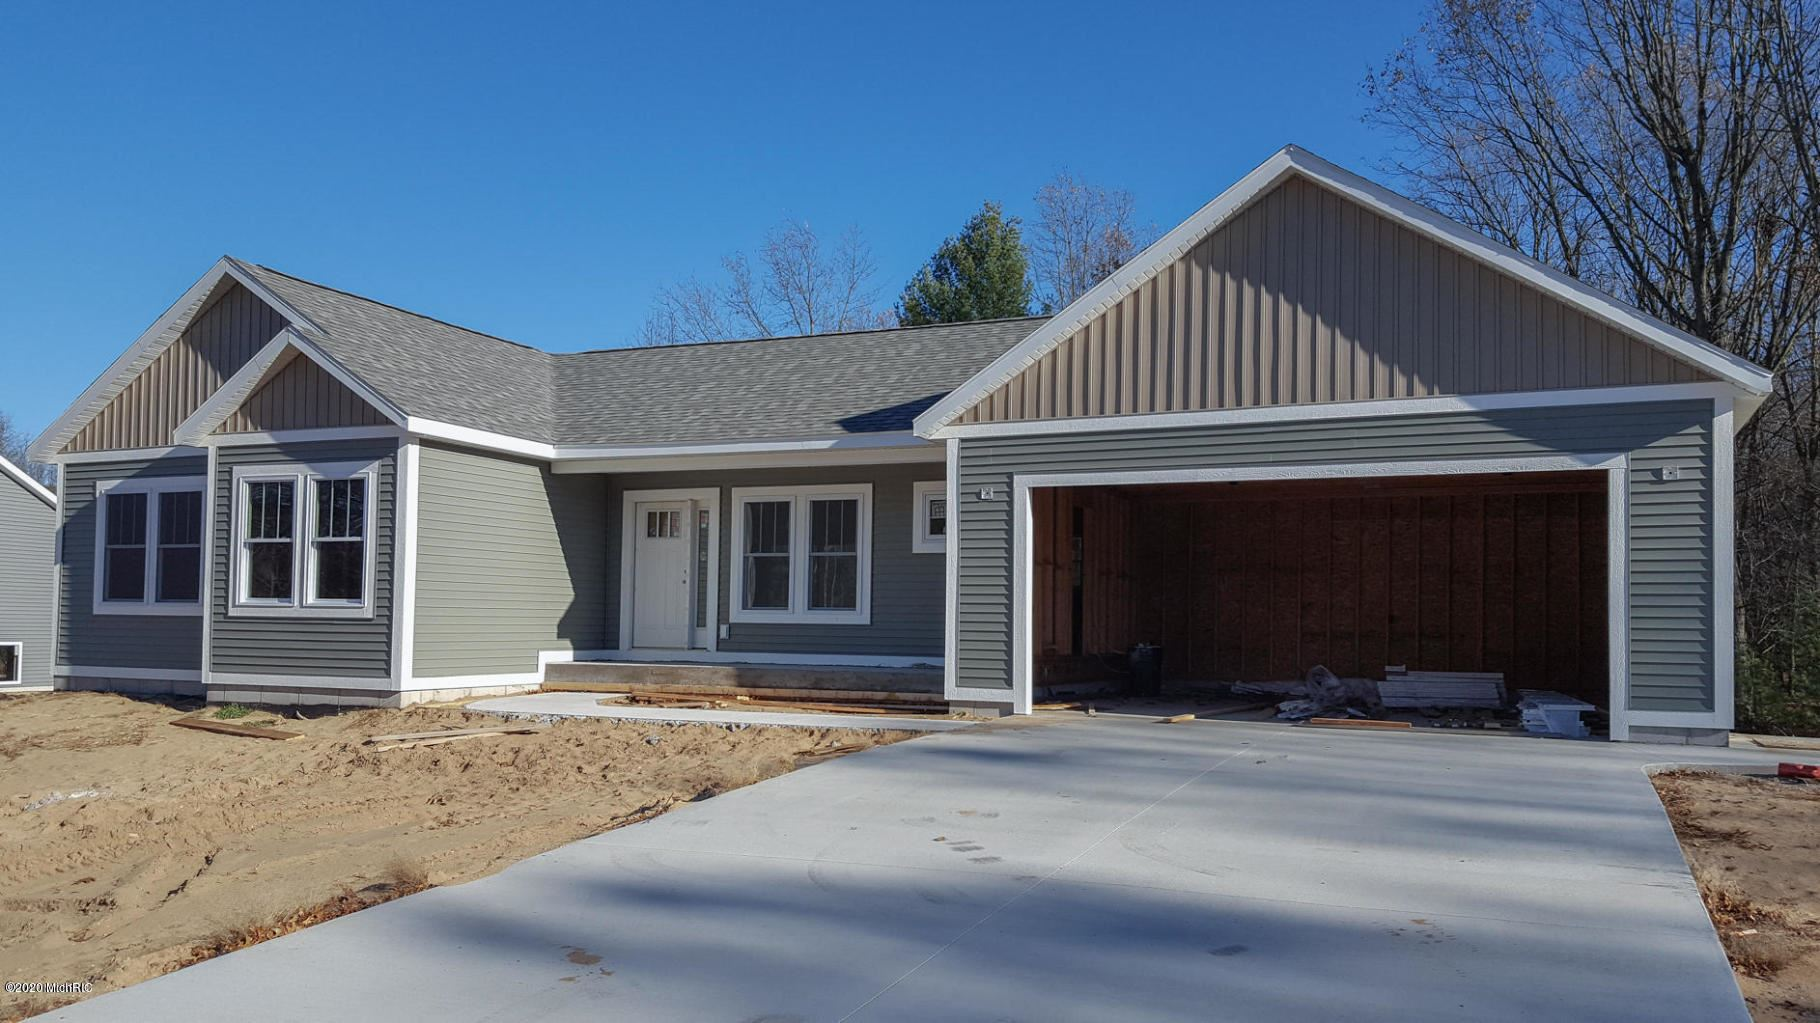 3877 Trailside Drive, Muskegon, MI 49444 - MLS#: 20029895